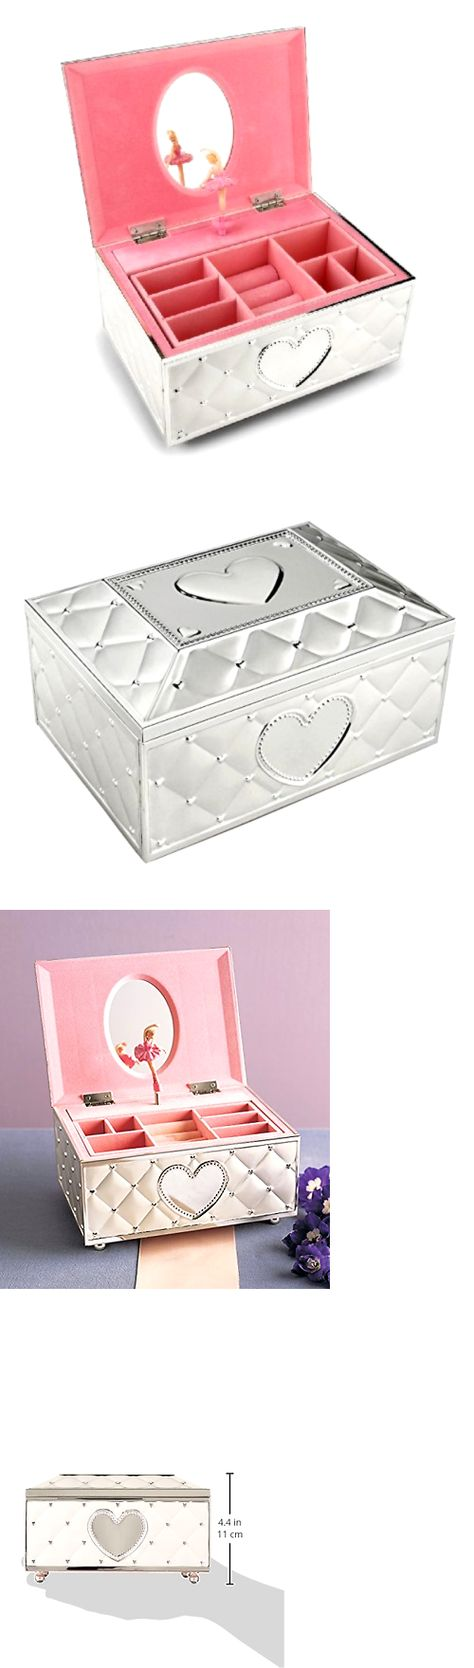 Lenox Childhood Memories Ballerina Jewelry Box Extraordinary Jewelry Boxes 3820 Lenox Childhood Memories Ballerina Jewelry Box Inspiration